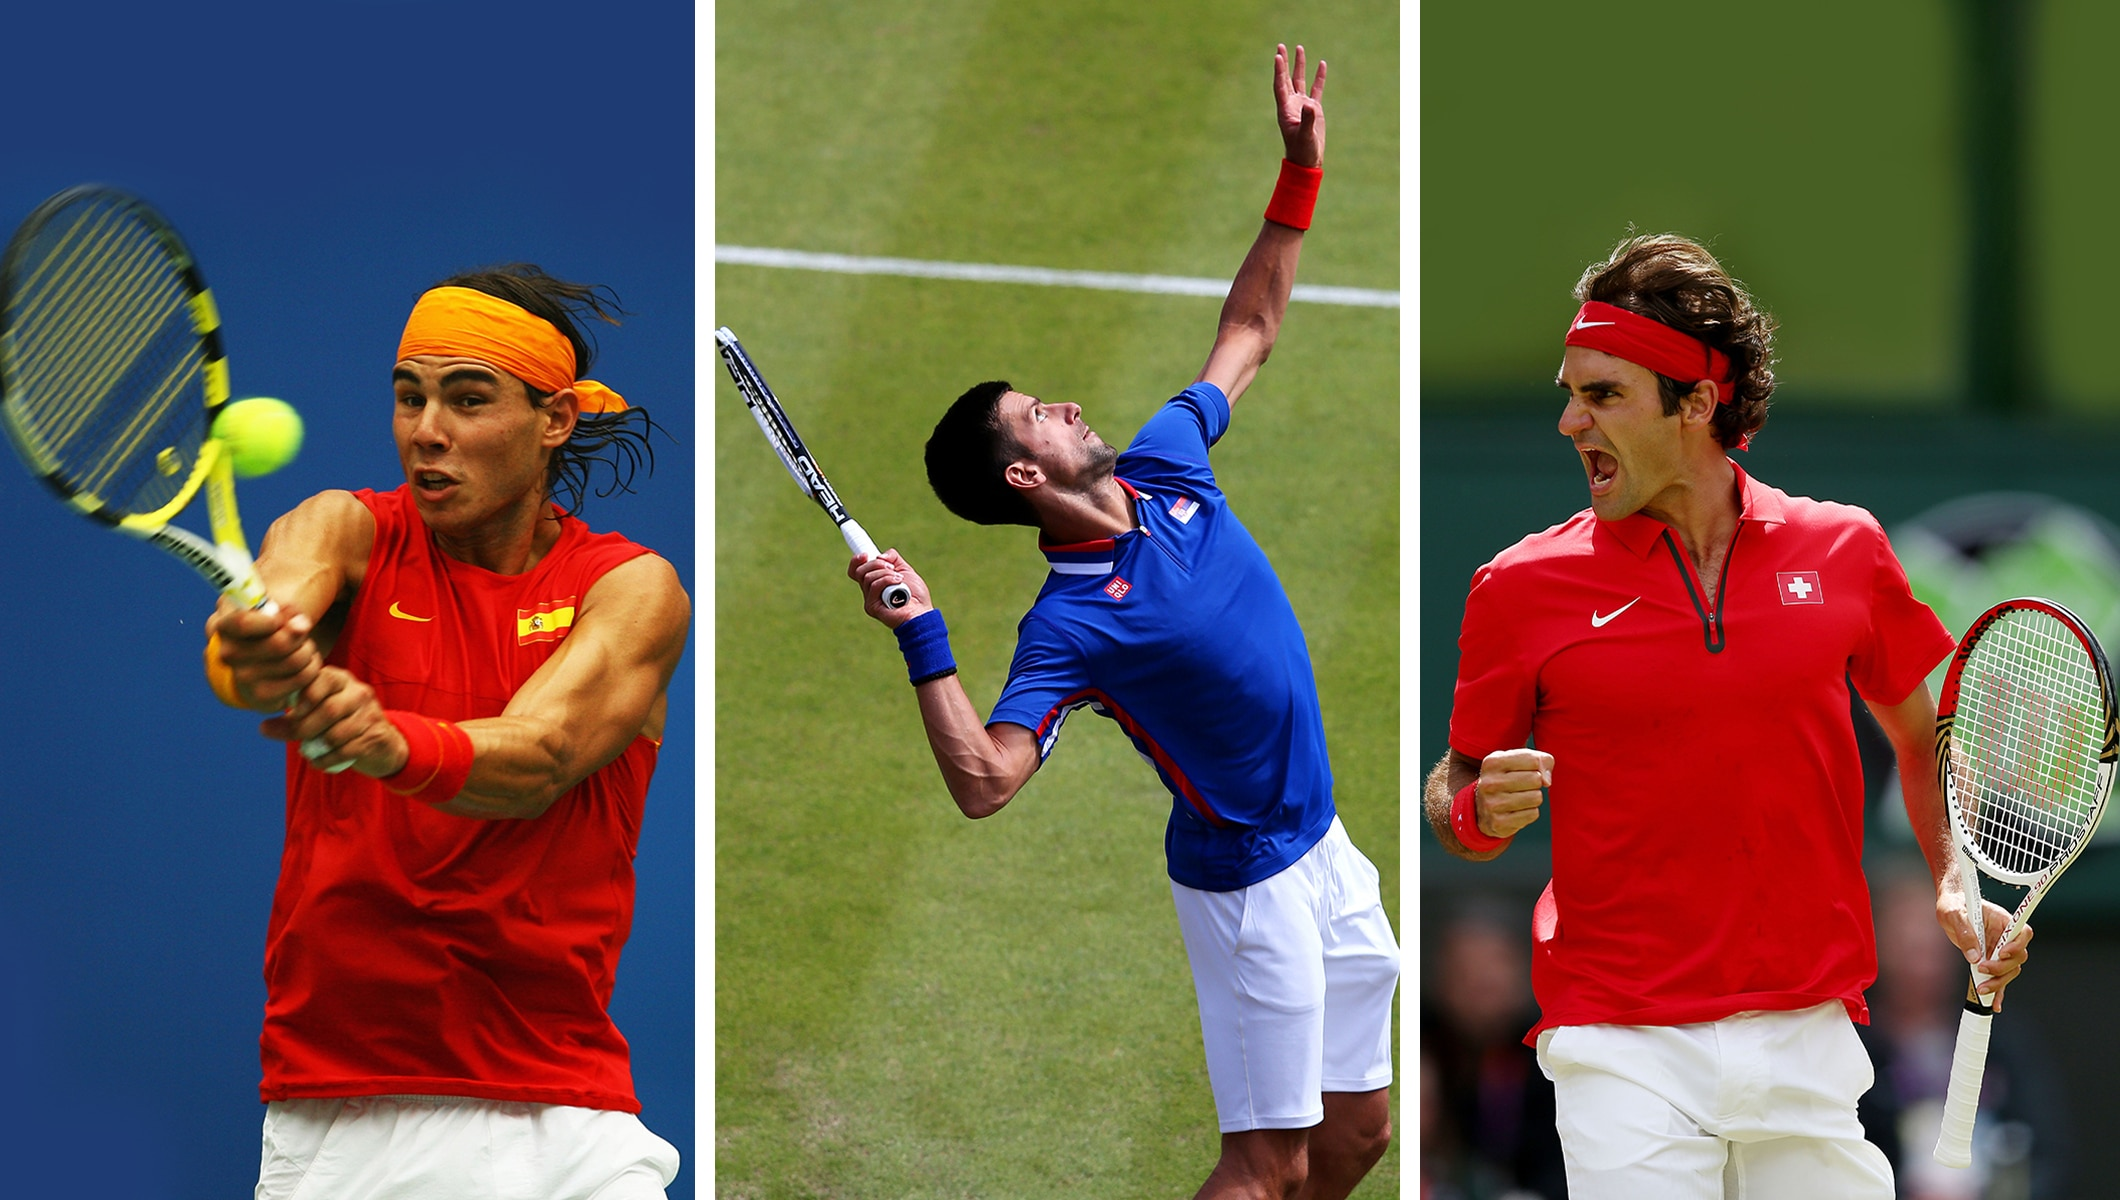 Rafael Nadal, Novak Djokovic and Roger Federer